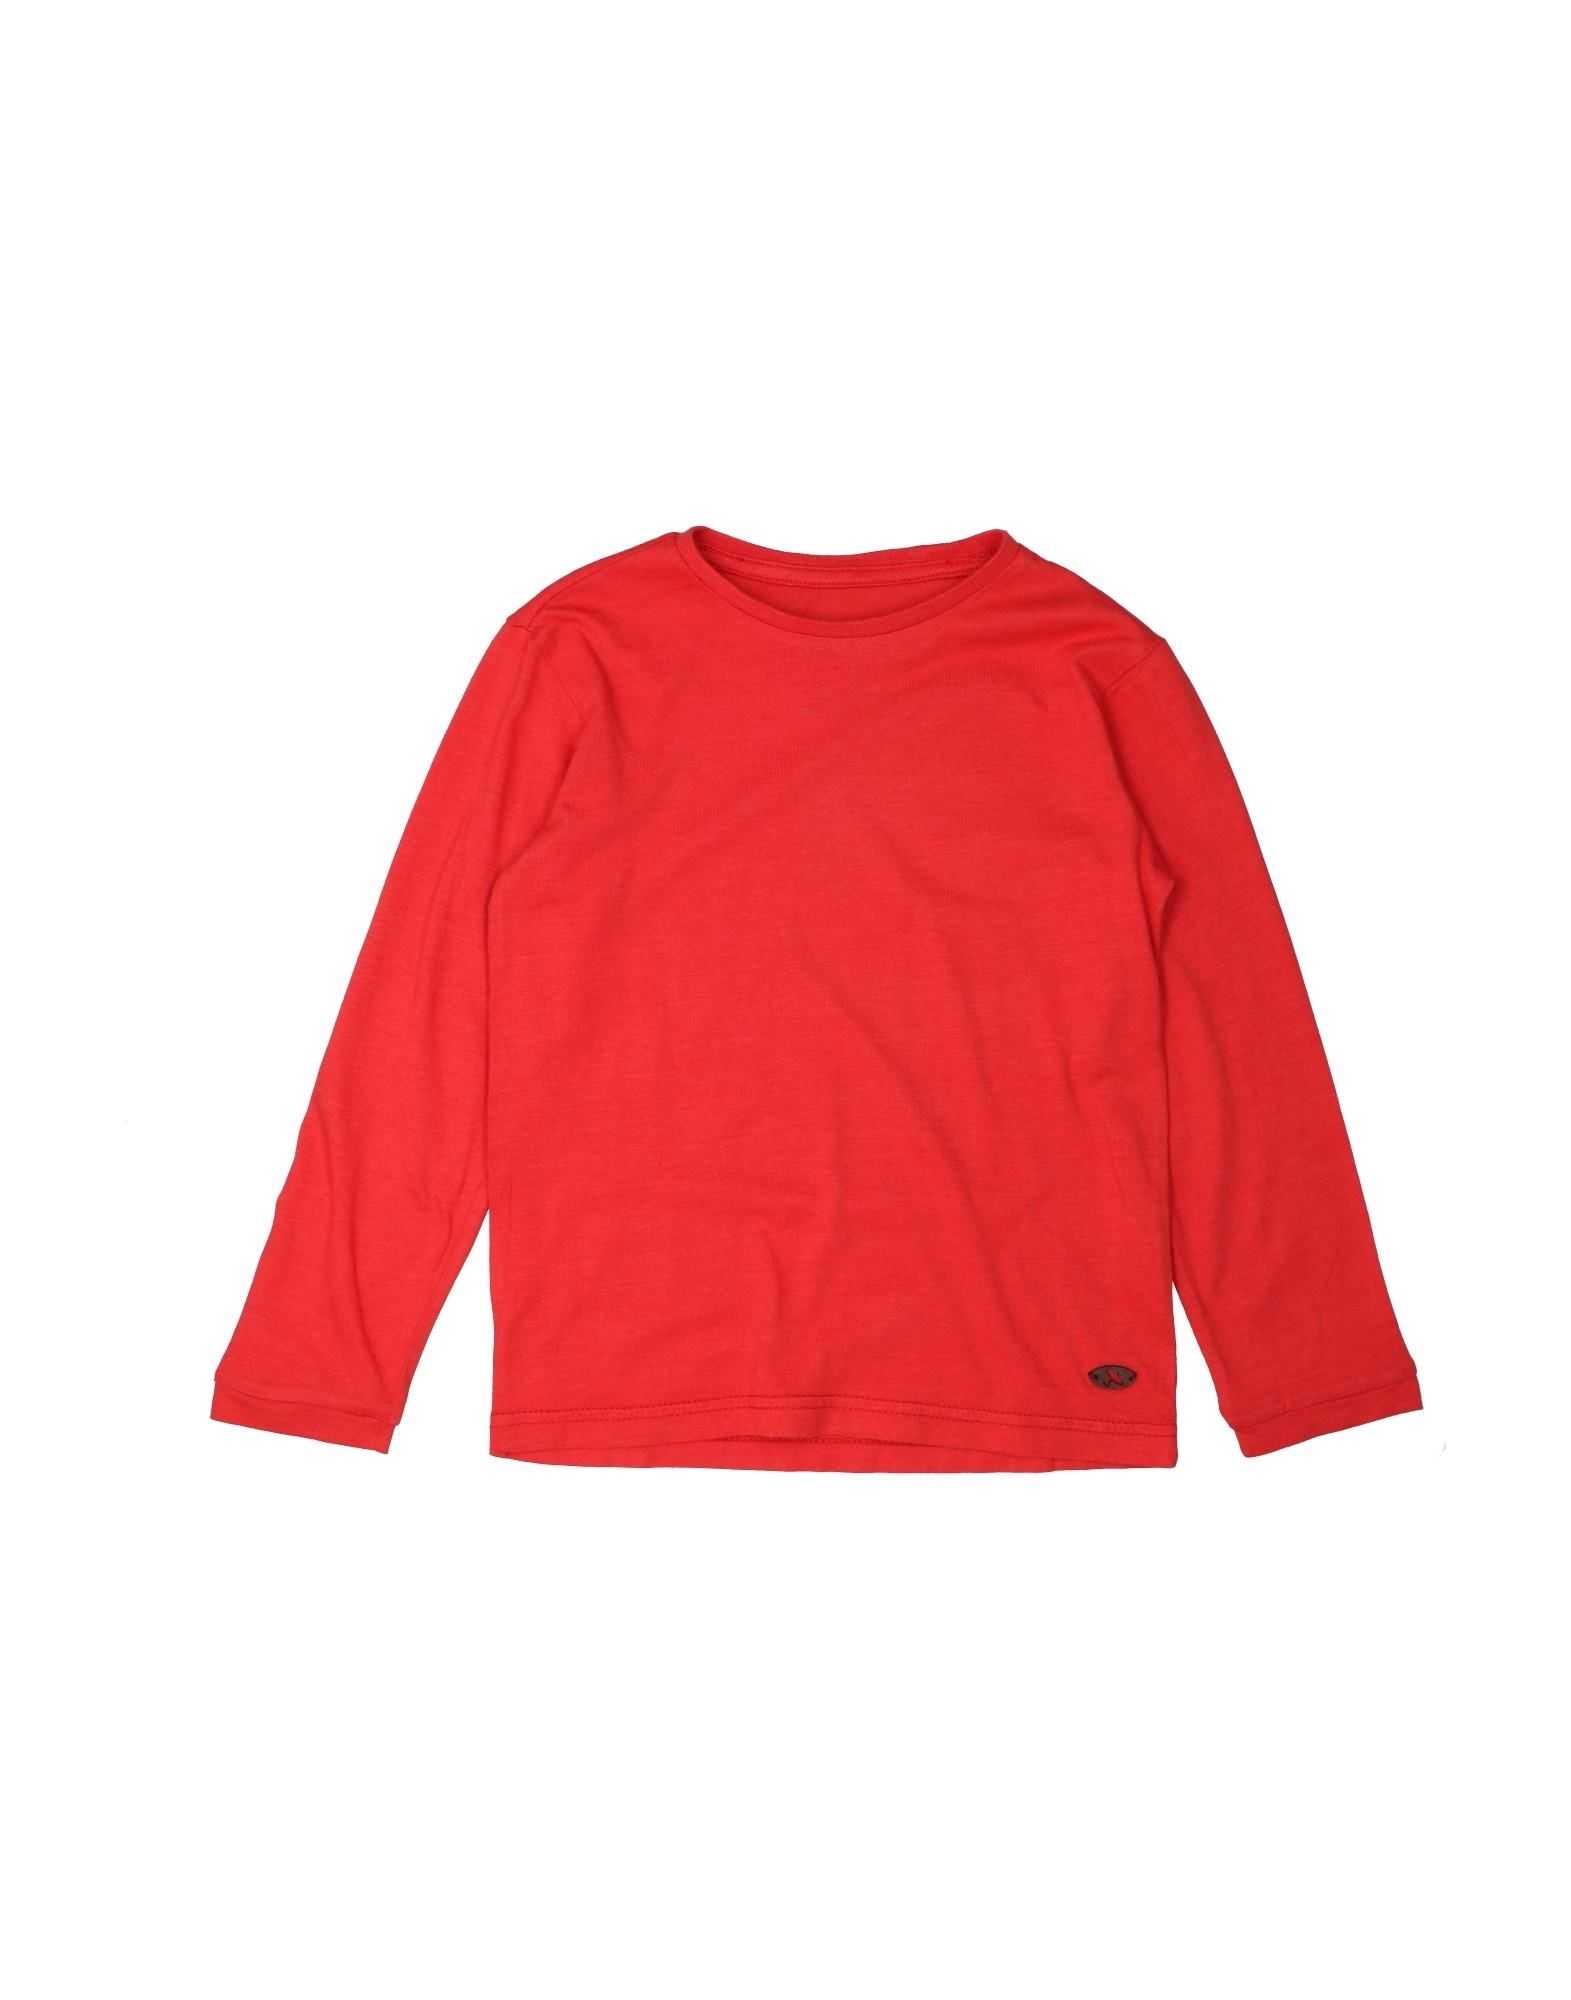 Sp1 Kids' T-shirts In Red